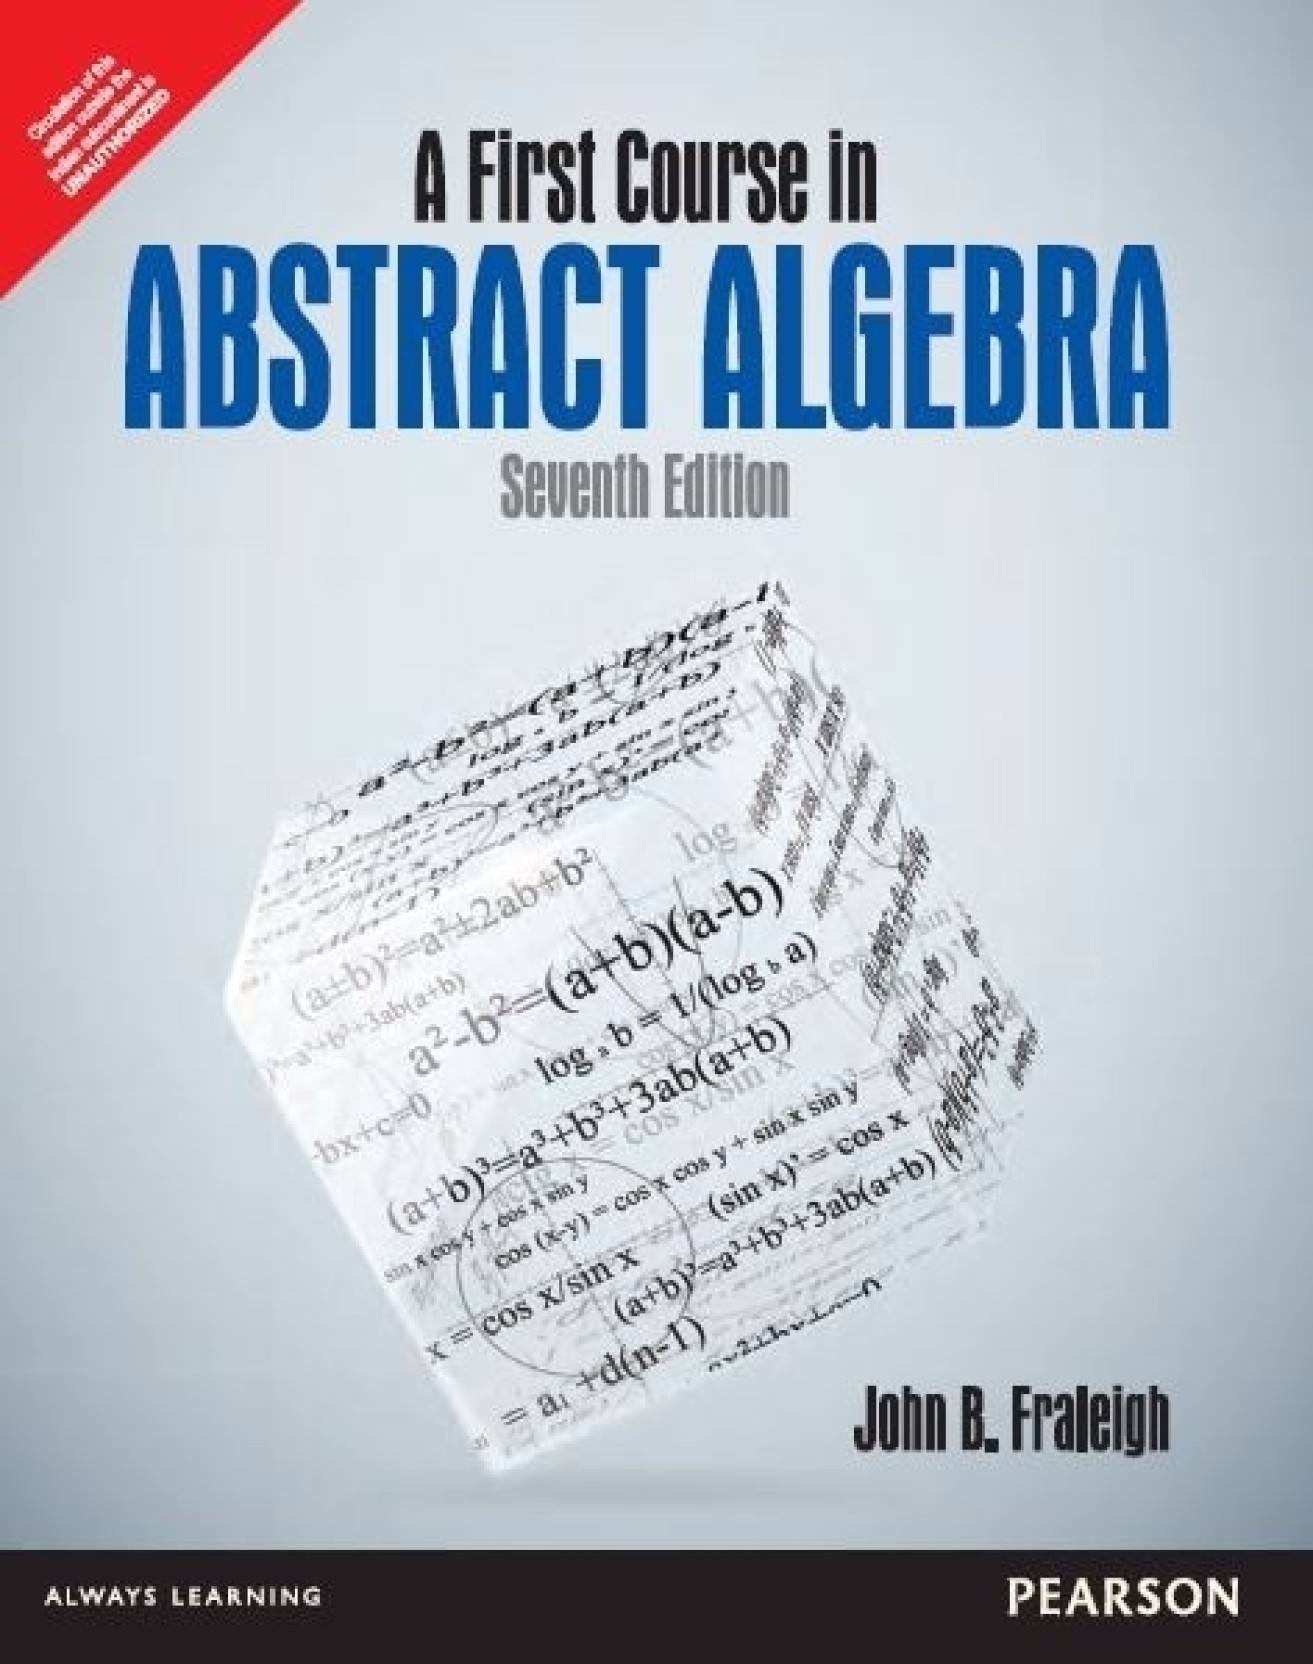 A First Course in Abstract Algebra 7th Edition. ADD TO CART